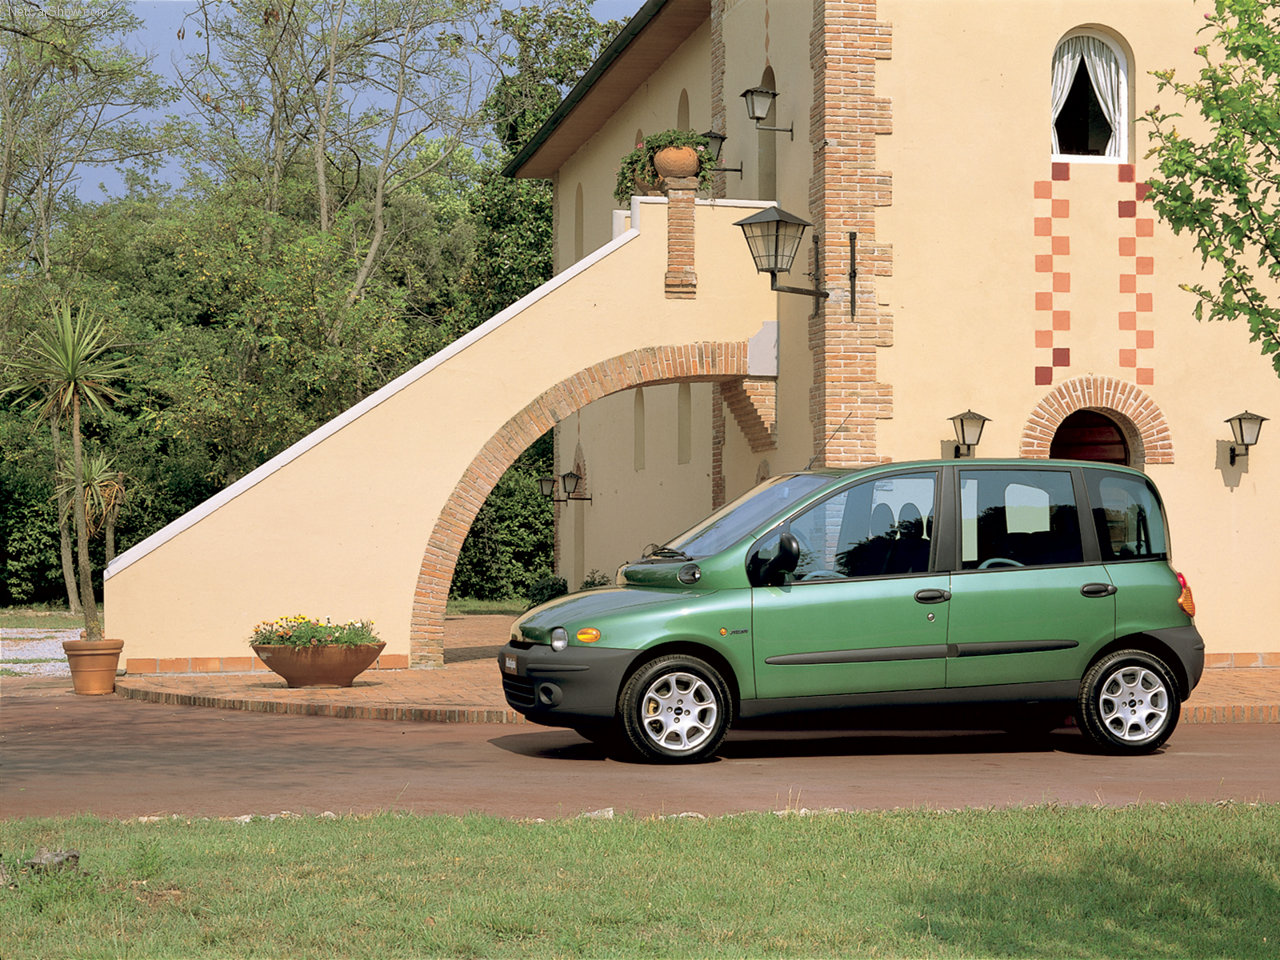 heres a pic of a fiat multipla cuz posting a pic of a. Black Bedroom Furniture Sets. Home Design Ideas